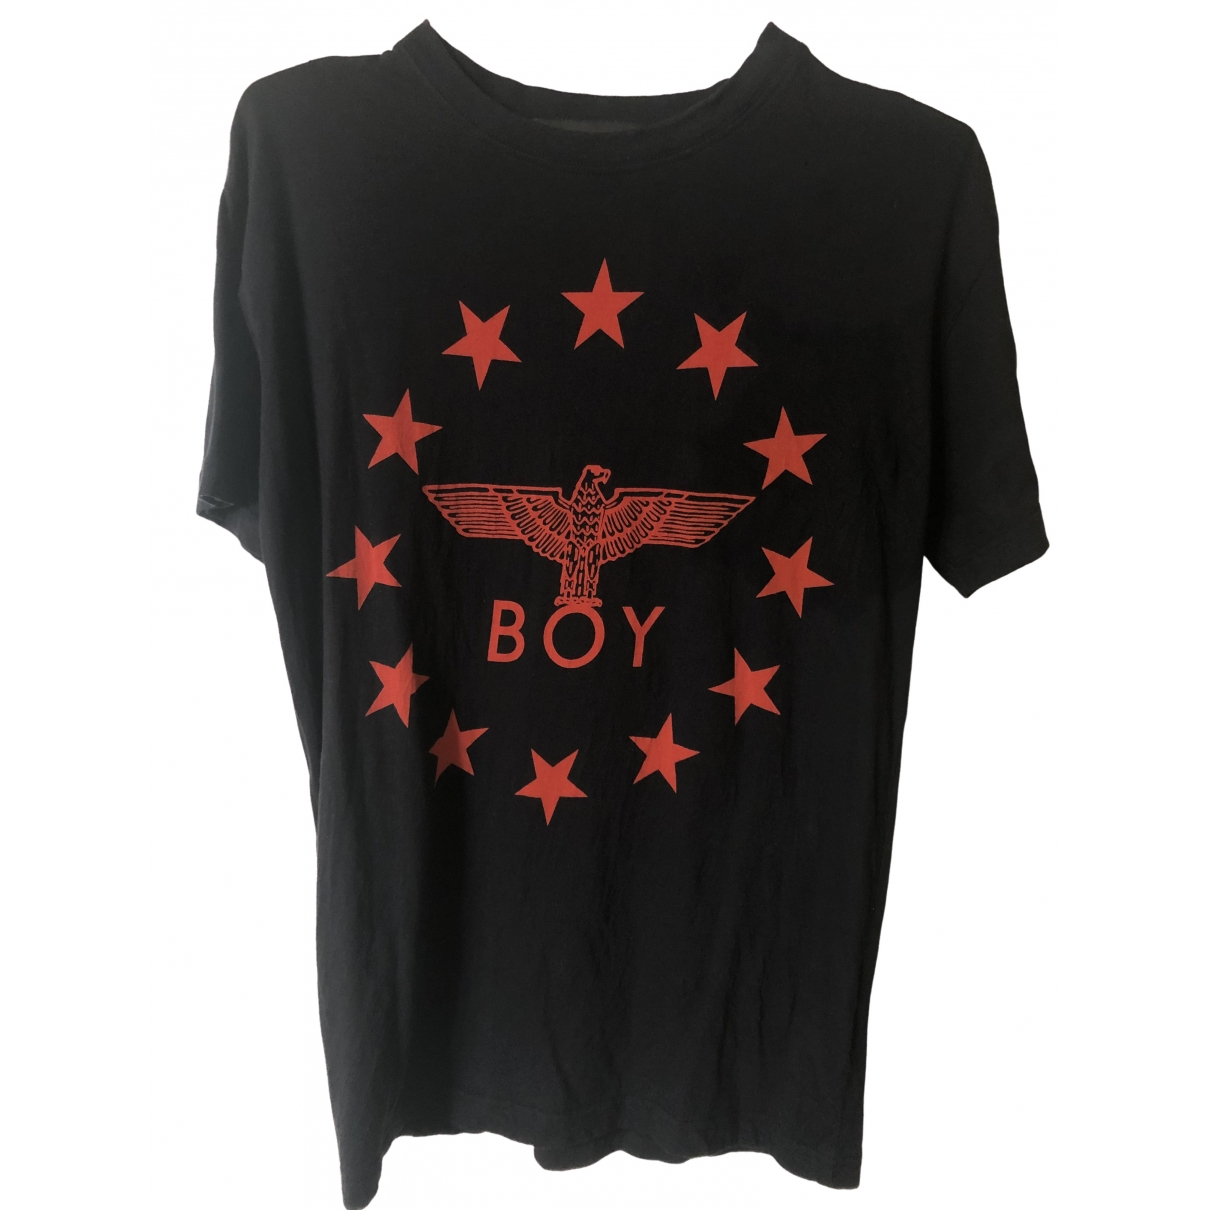 Boy London \N Black Cotton T-shirts for Men XS International